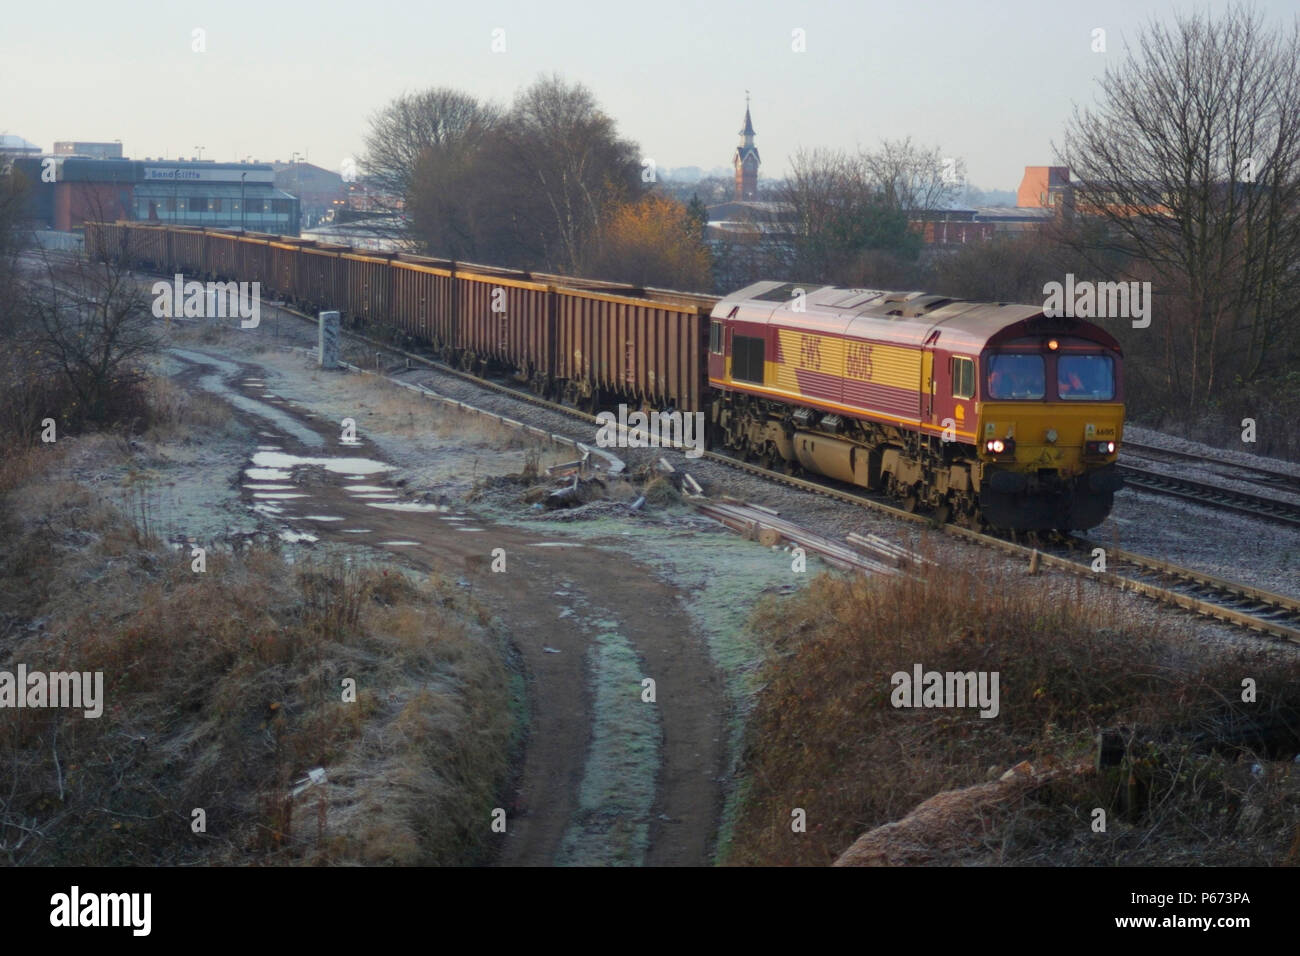 An EWS freight train is seen here as it heads towards Leicester station on the midland mainline on a cold frosty morning. 2004. - Stock Image